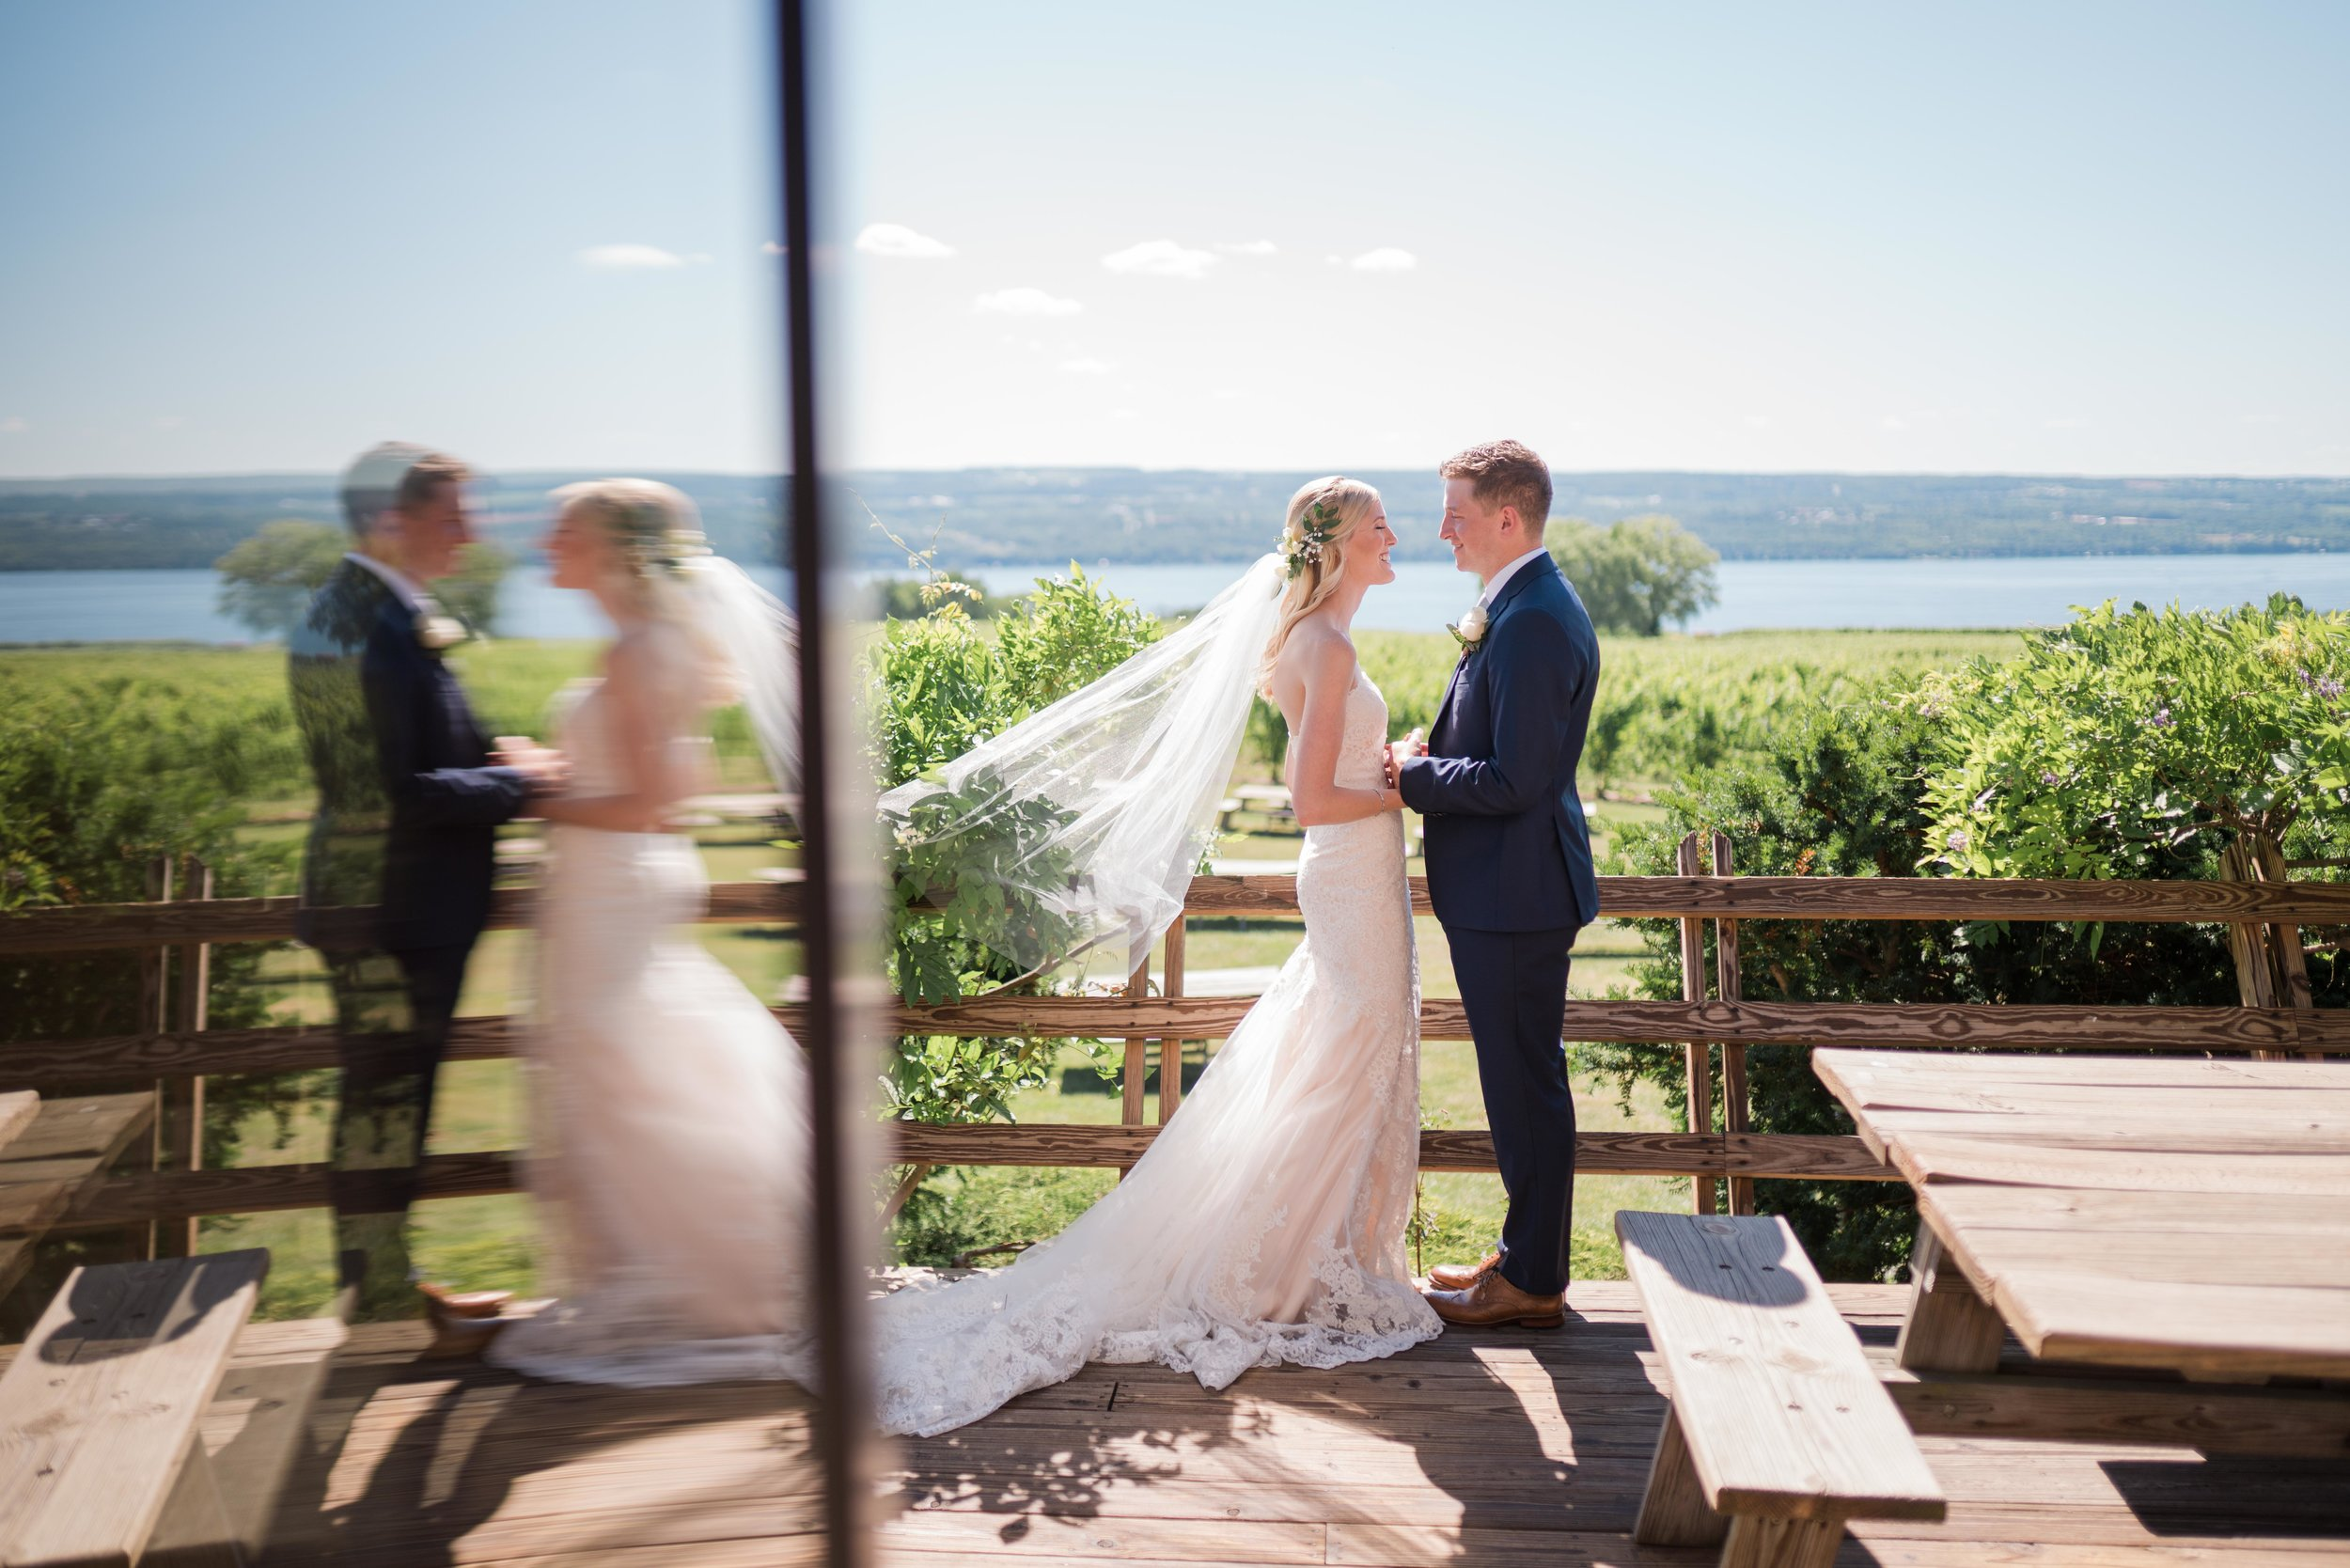 Wedding Photography at Wagner Vineyards Ginny Lee Cafe Finger Lakes by Stefan Ludwig Photography-38.jpg